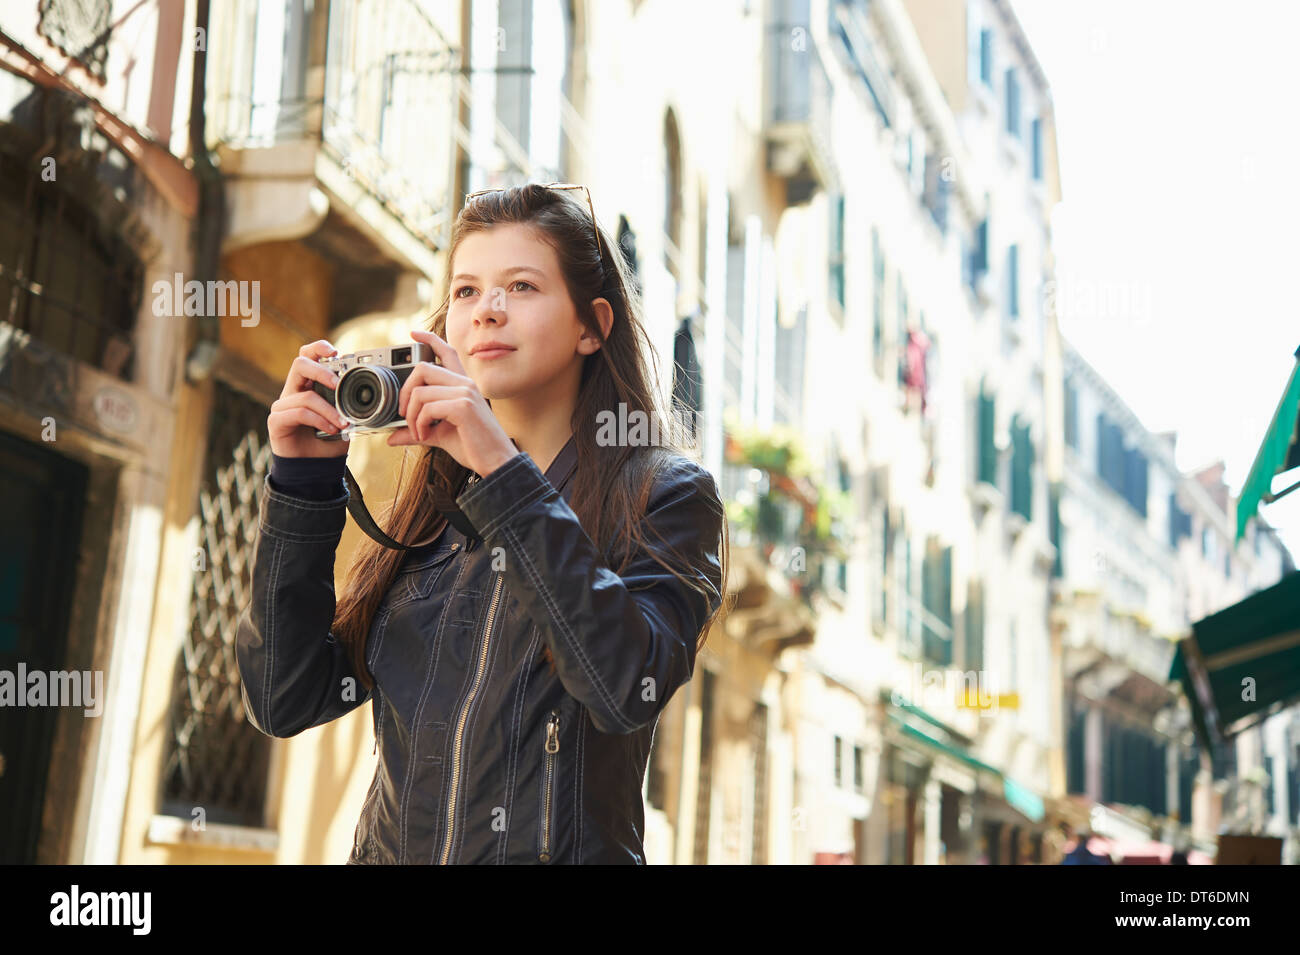 Girl exploring with camera, Venice, Italy - Stock Image